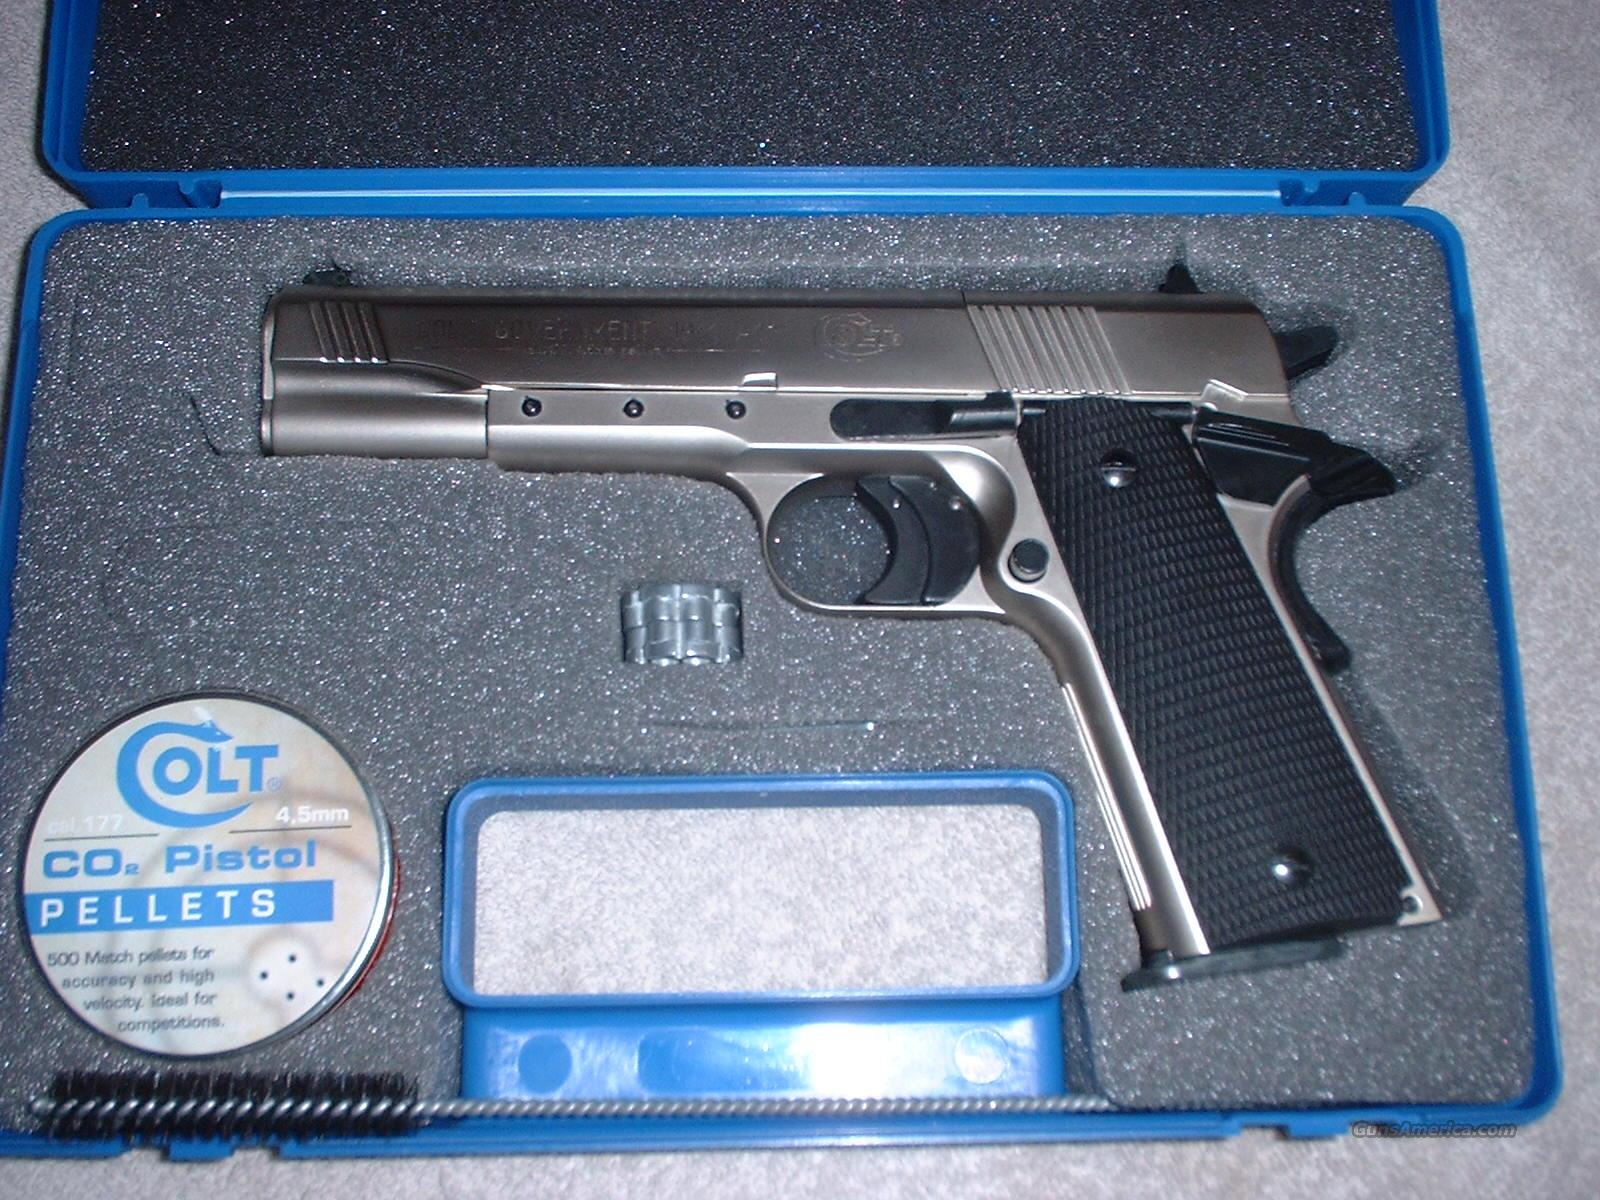 Colt 1911-A1 Nickel Finish .177 Pellet Co2 Pistol, Original Colt Marketed Model, Not Umarex -PRICED REDUCED FOR X-MAS- SAME DAY EXPRESS SHIPPING  Non-Guns > Air Rifles - Pistols > CO2 Pistol